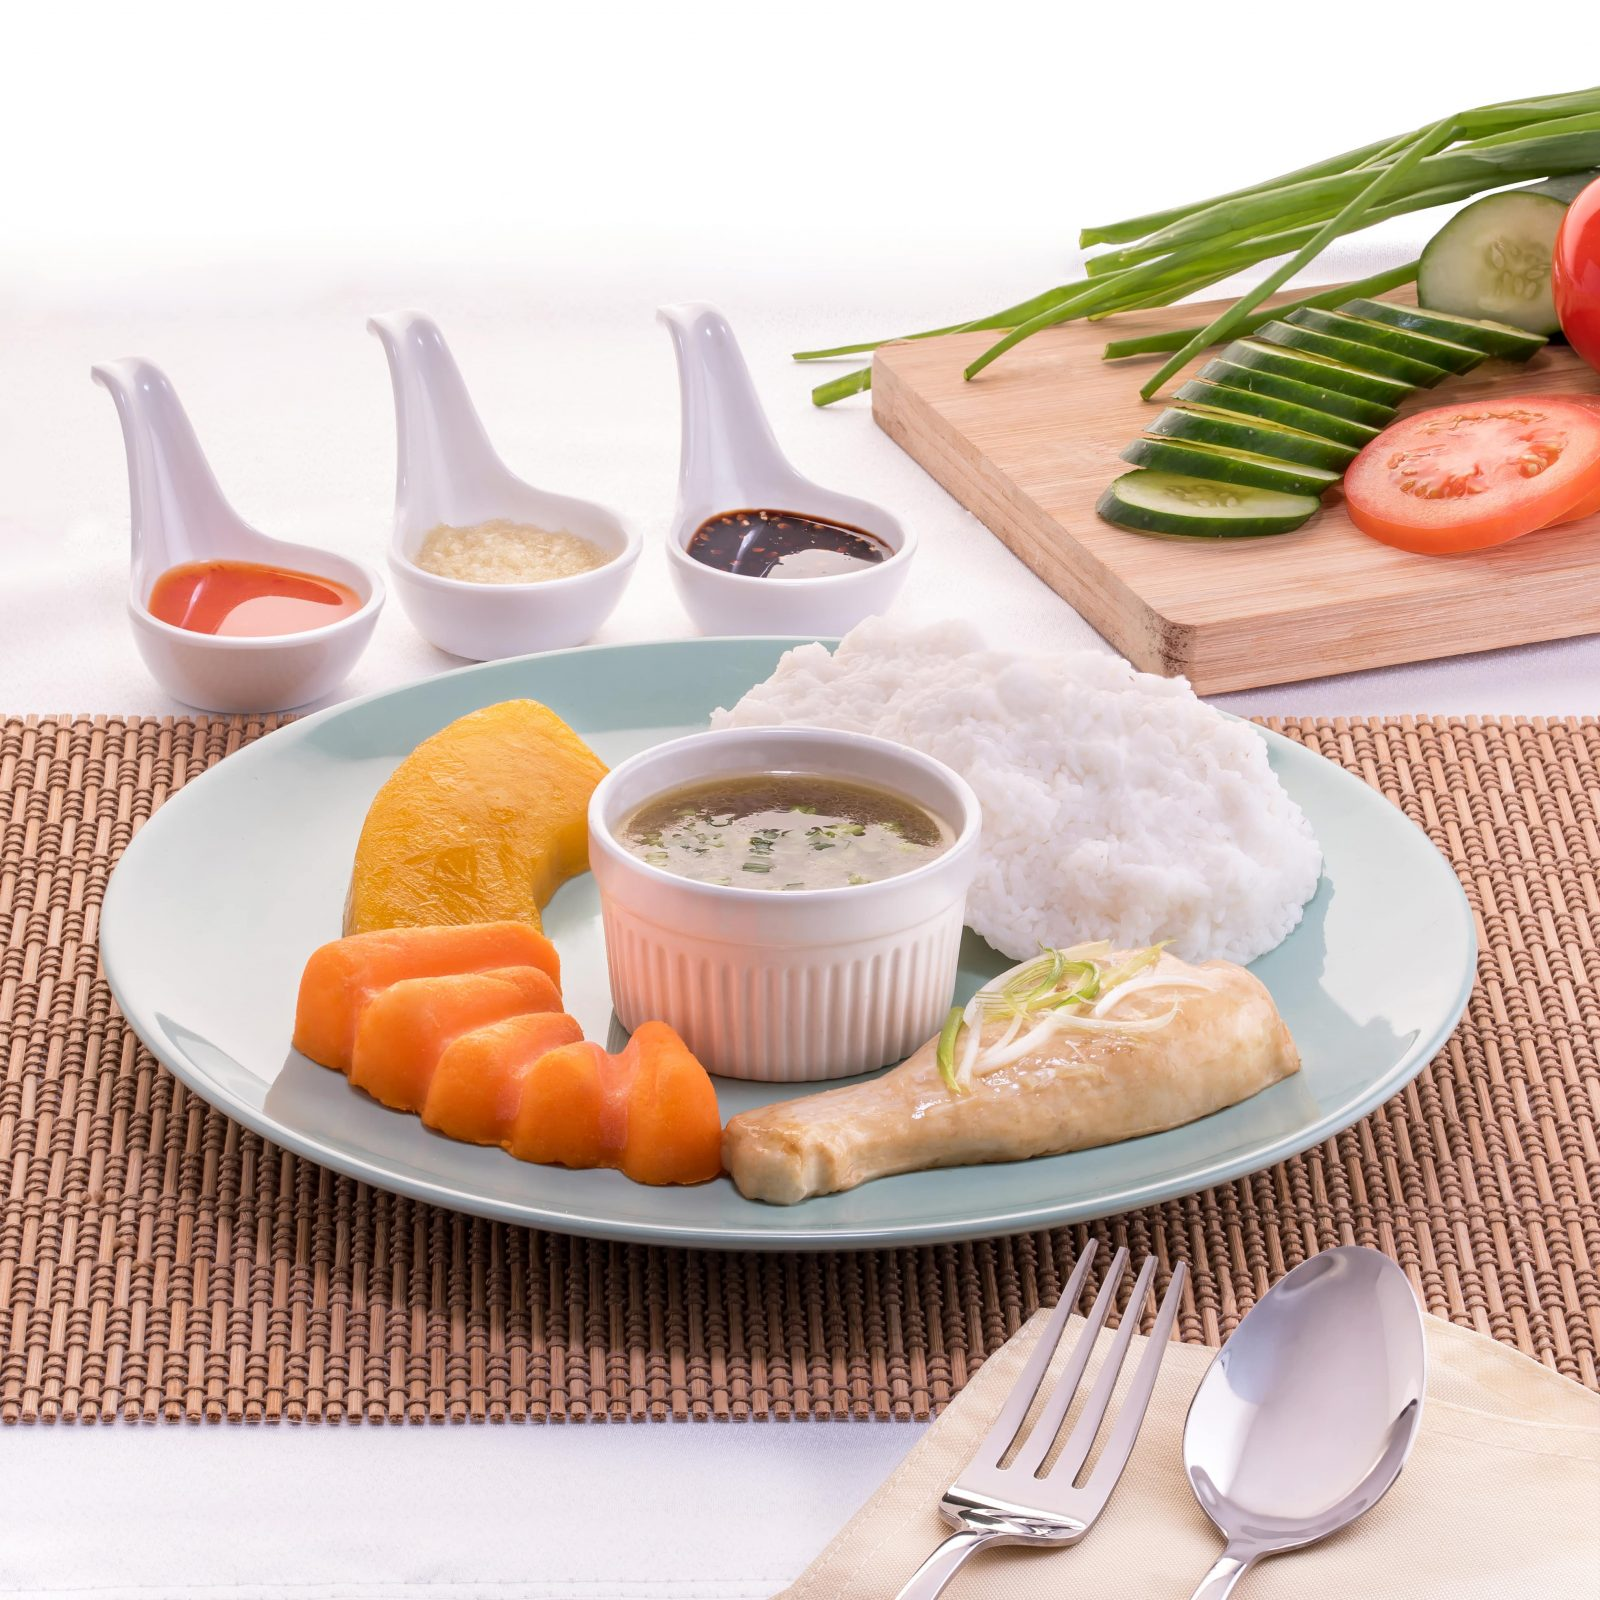 Local hawker favourites, such as Hainanese chicken rice, are texturally modified but shaped to ensure they remain appetising in terms of appearance, taste and smell